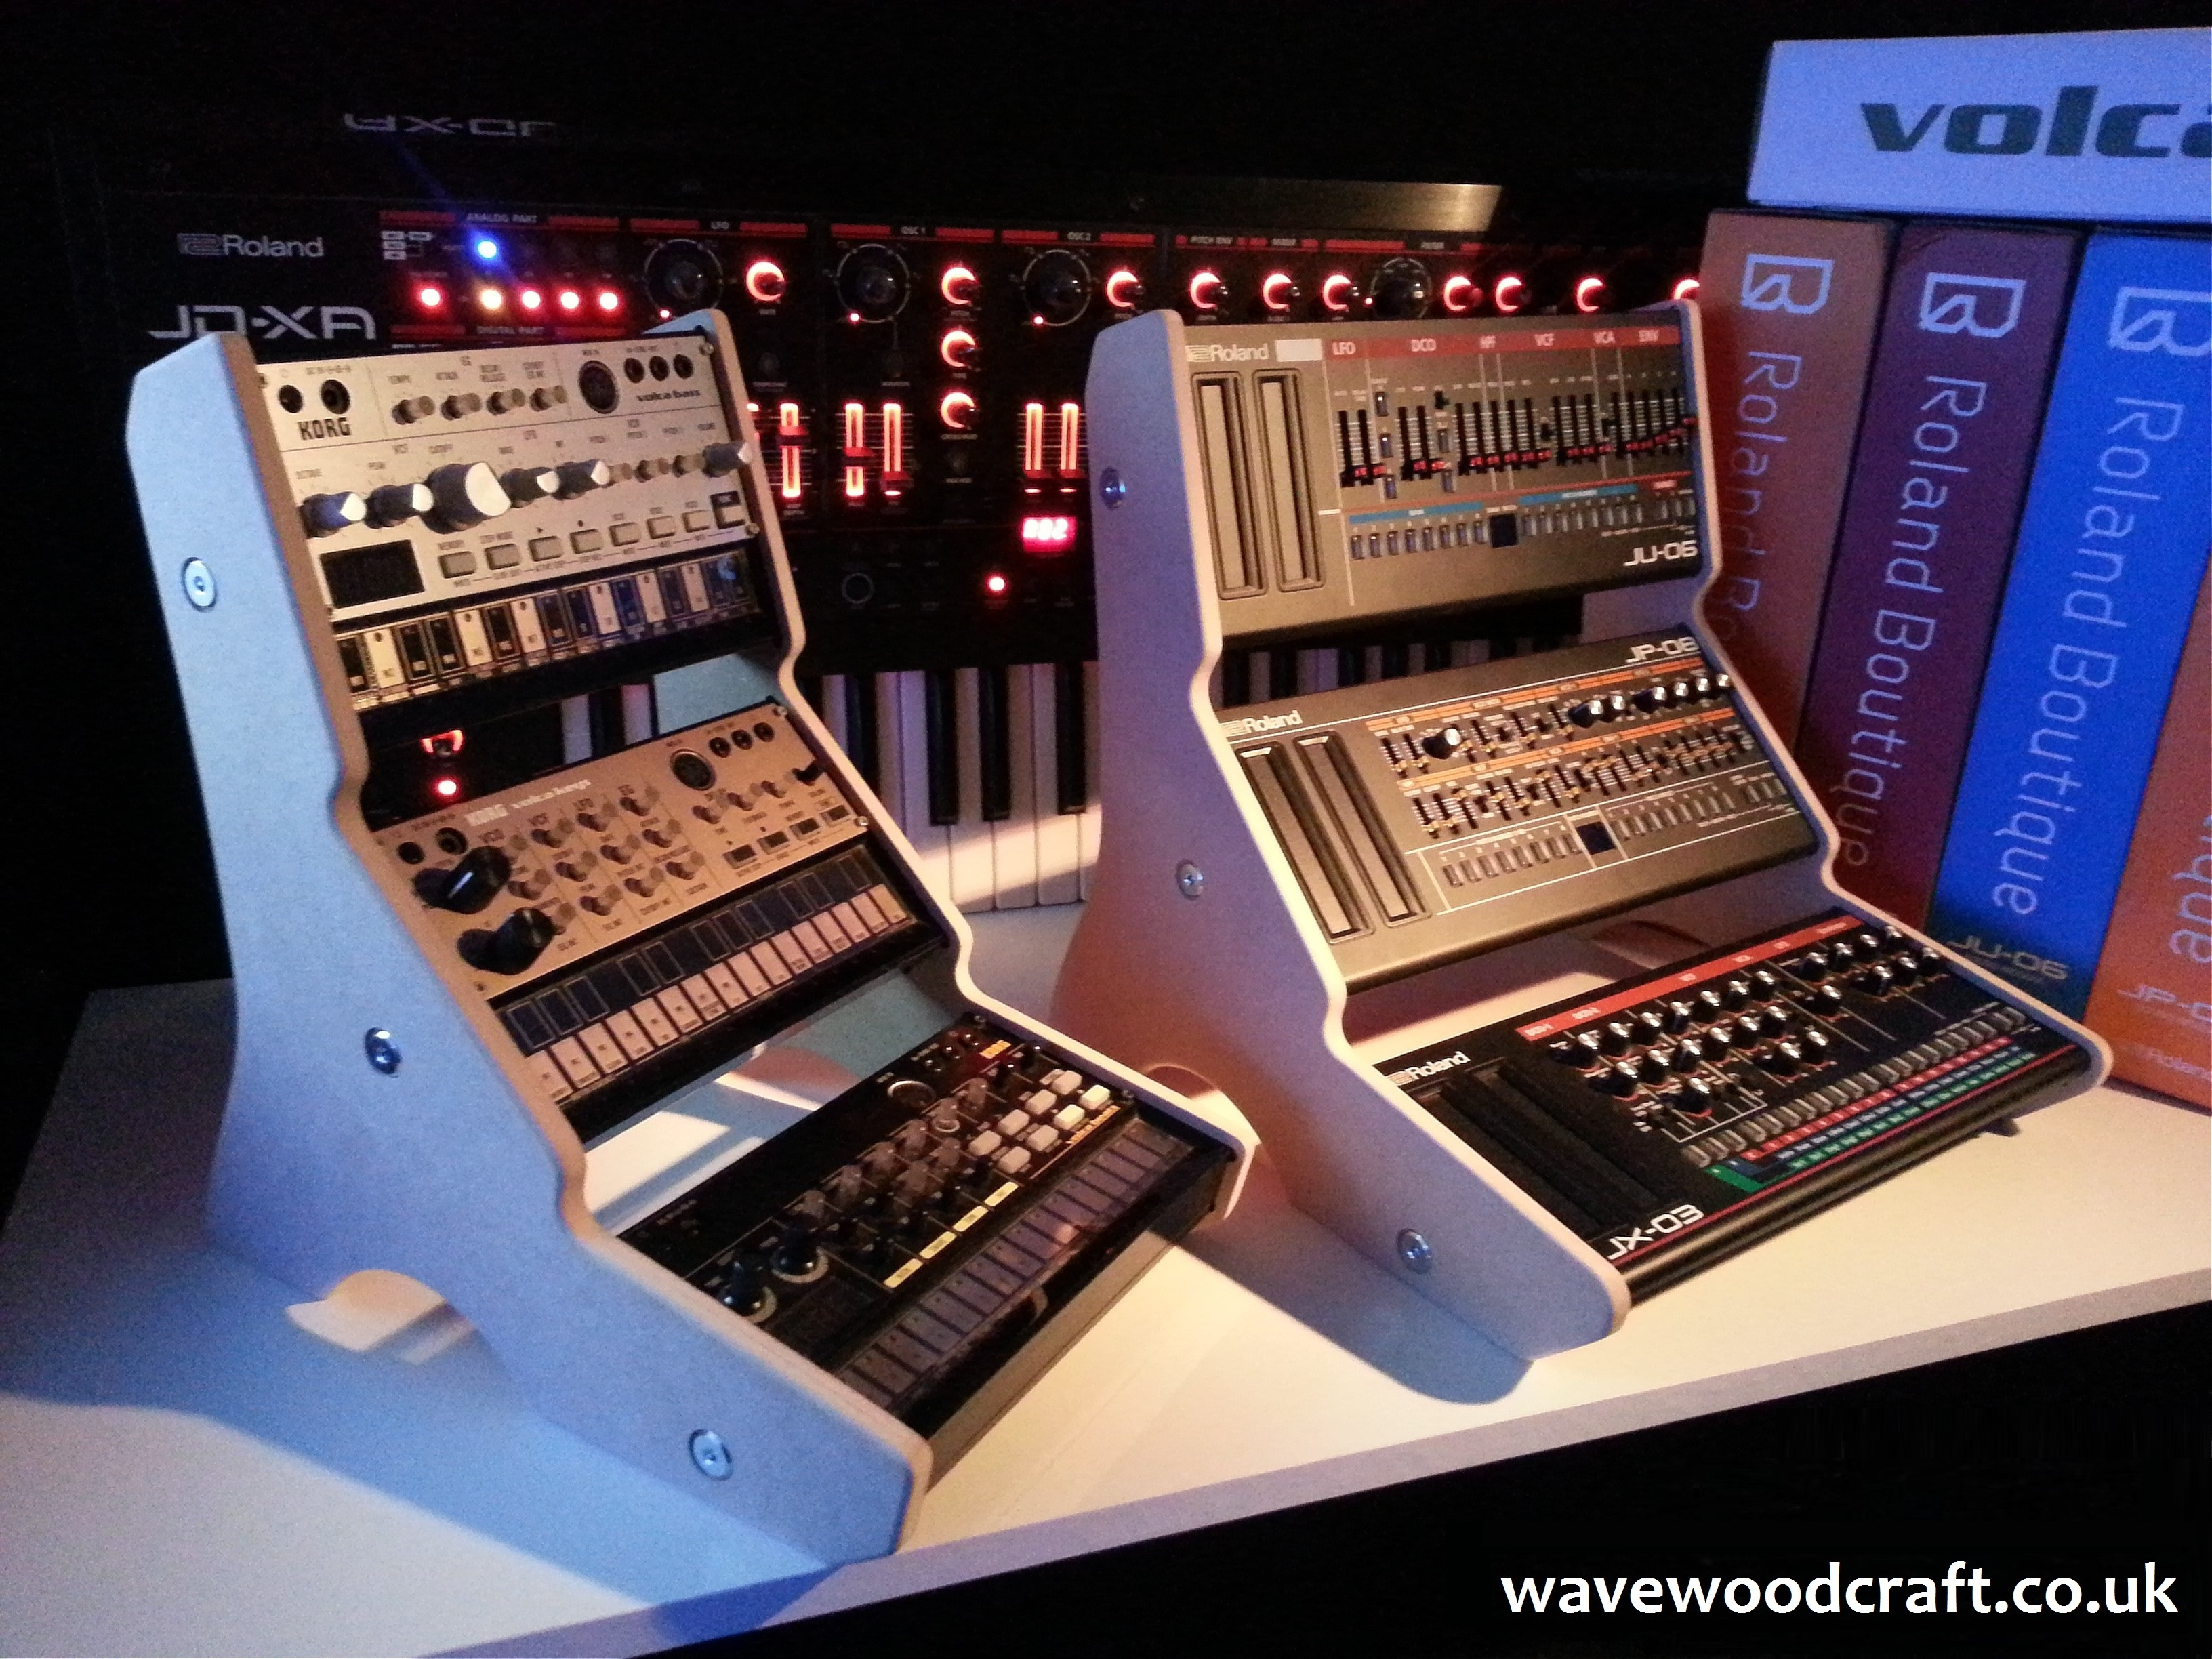 Korg Volca & Roland Boutique Stands